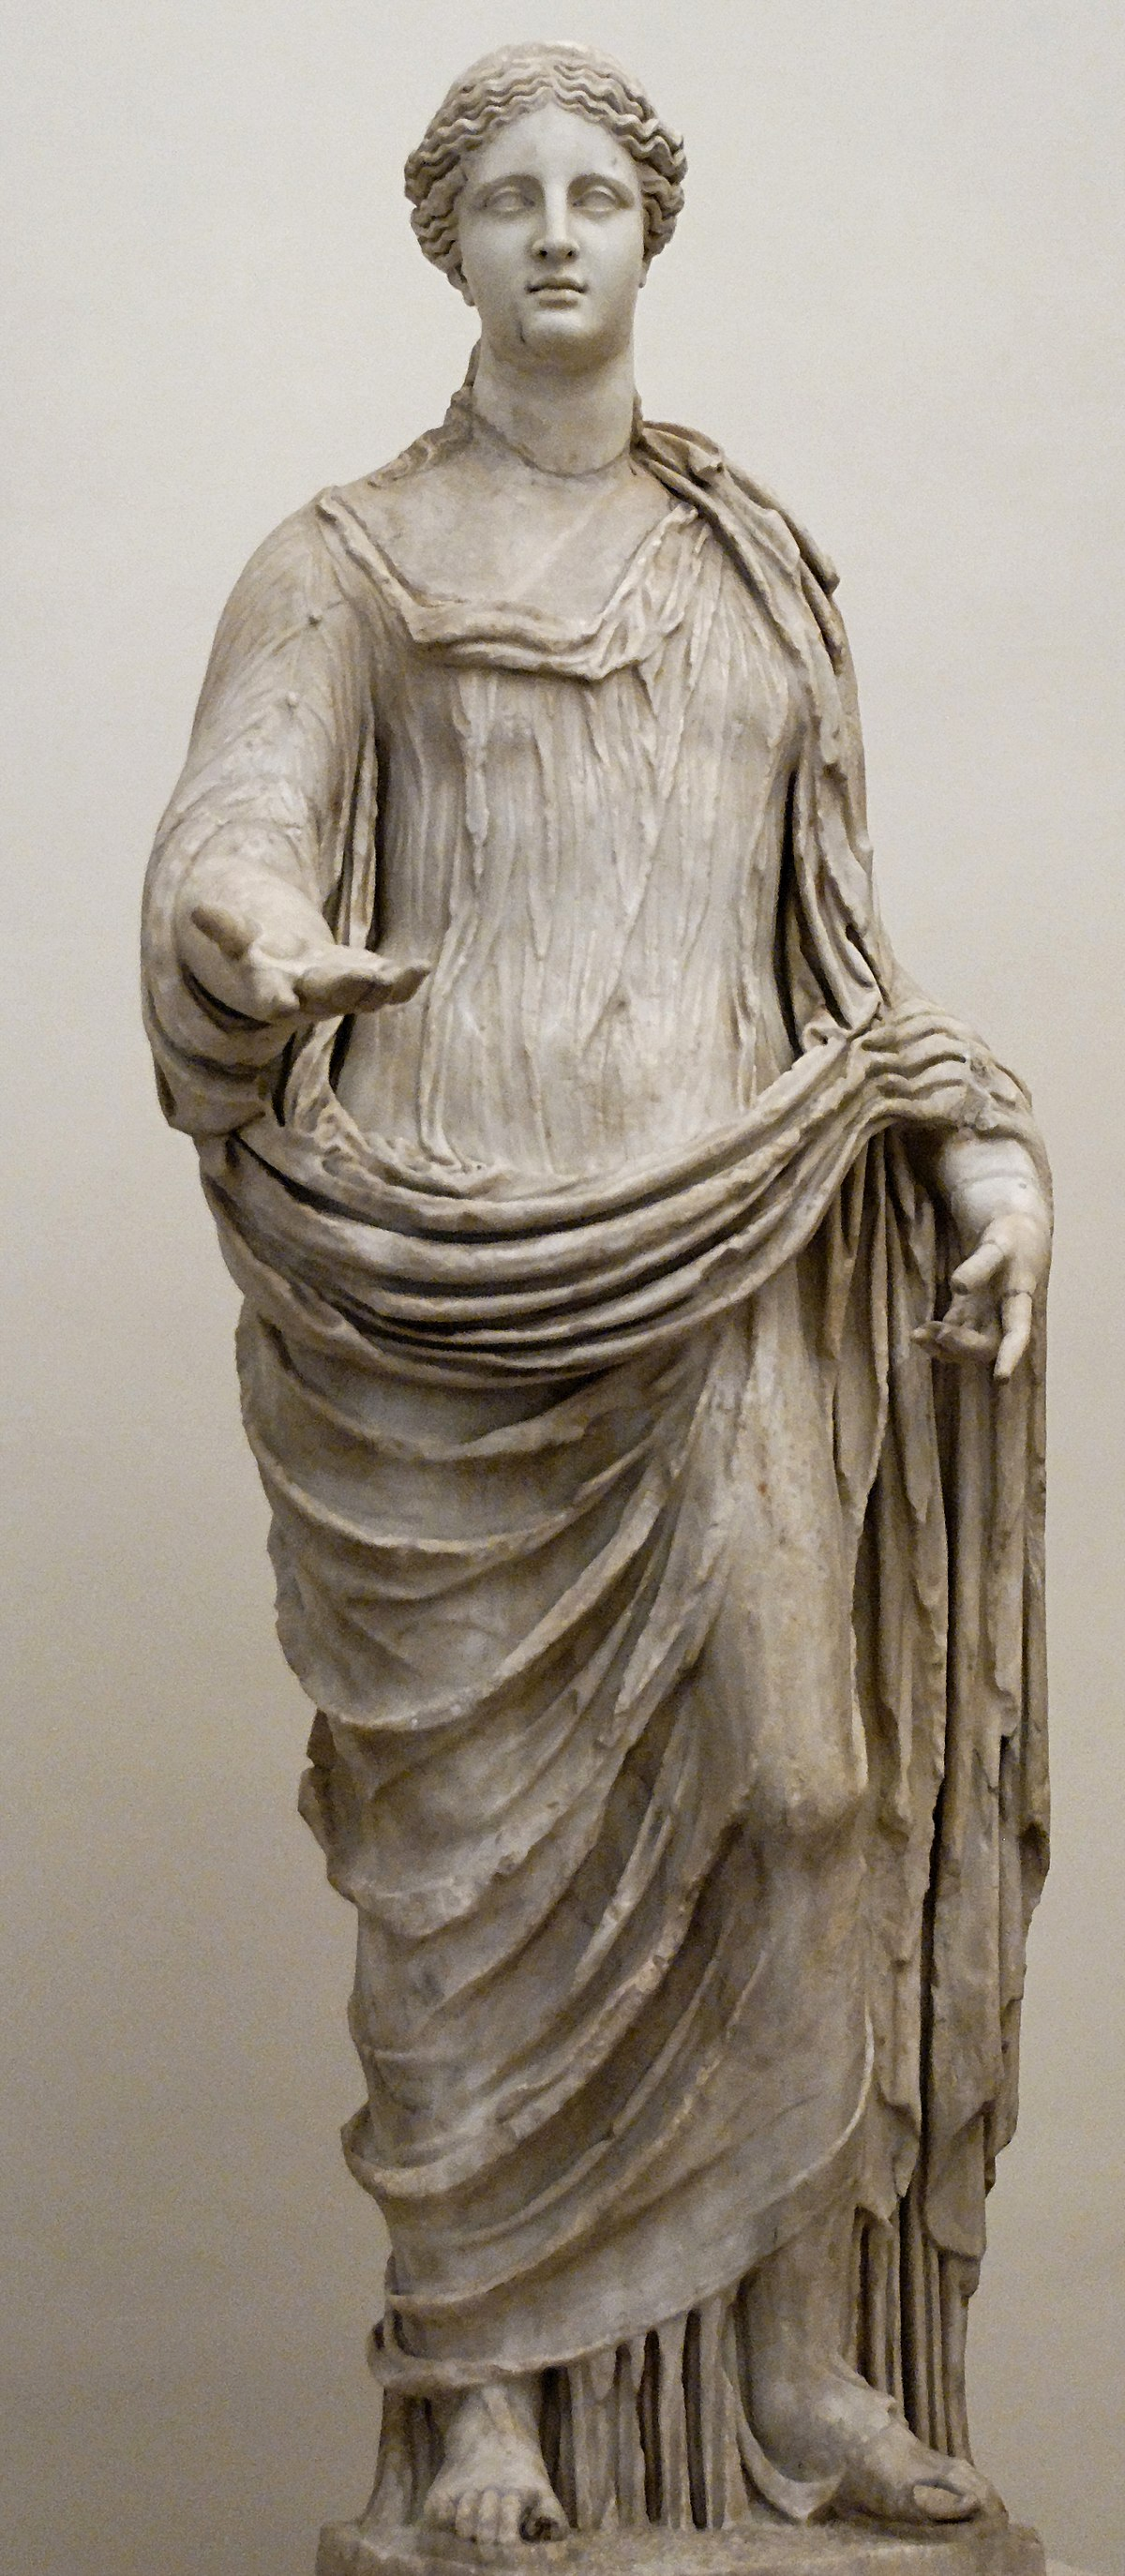 Ceres (mythology)